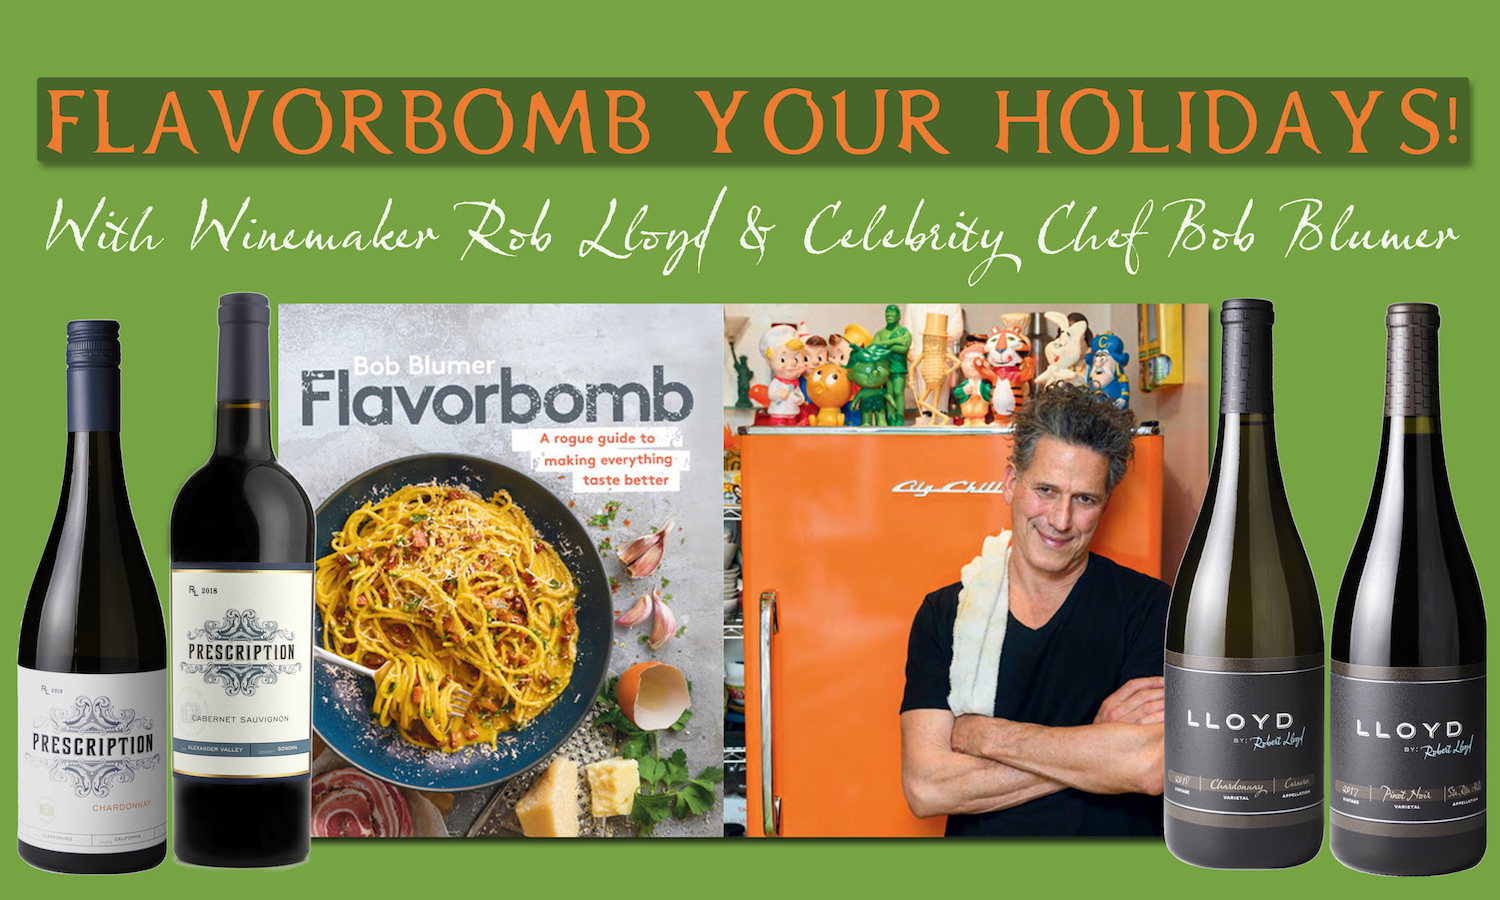 Flavorbomb Your Holidays Offer